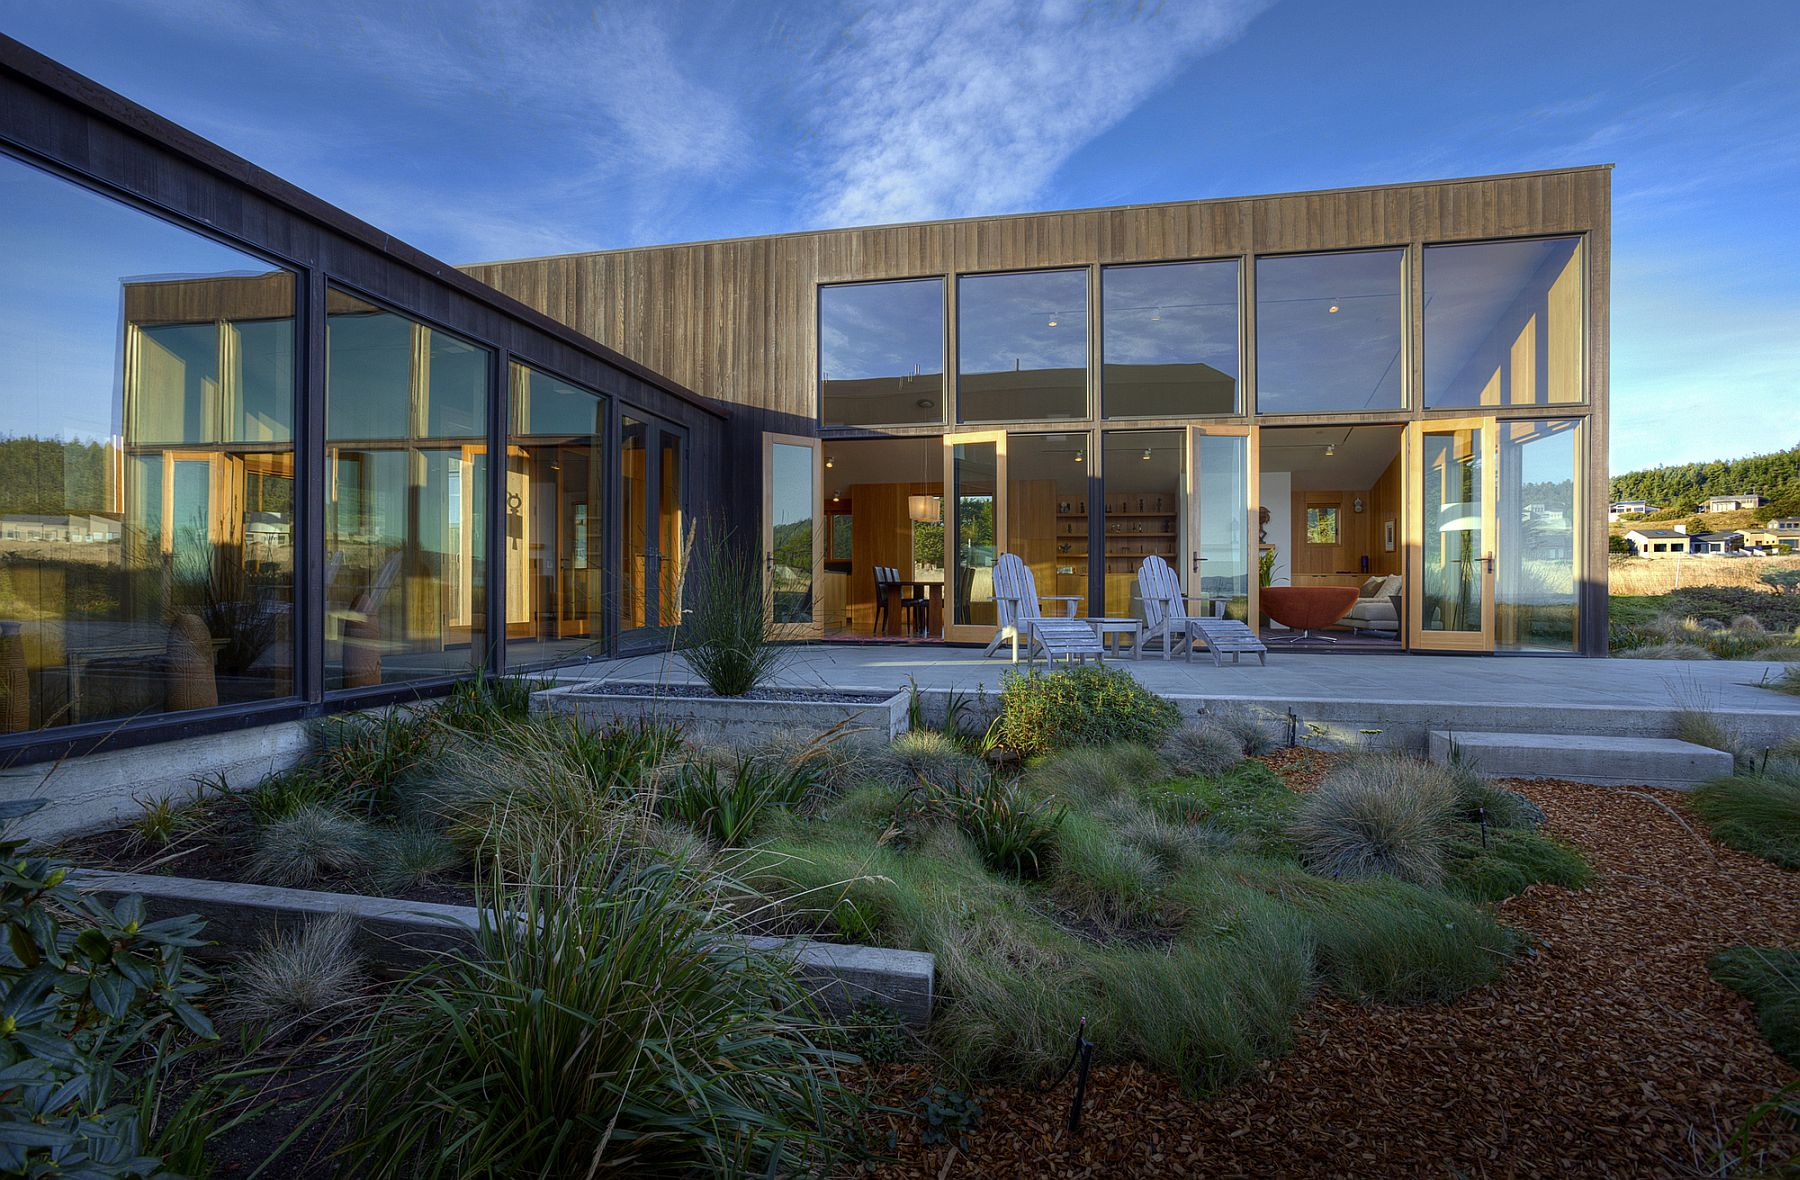 Meadow House in Sea Ranch, California